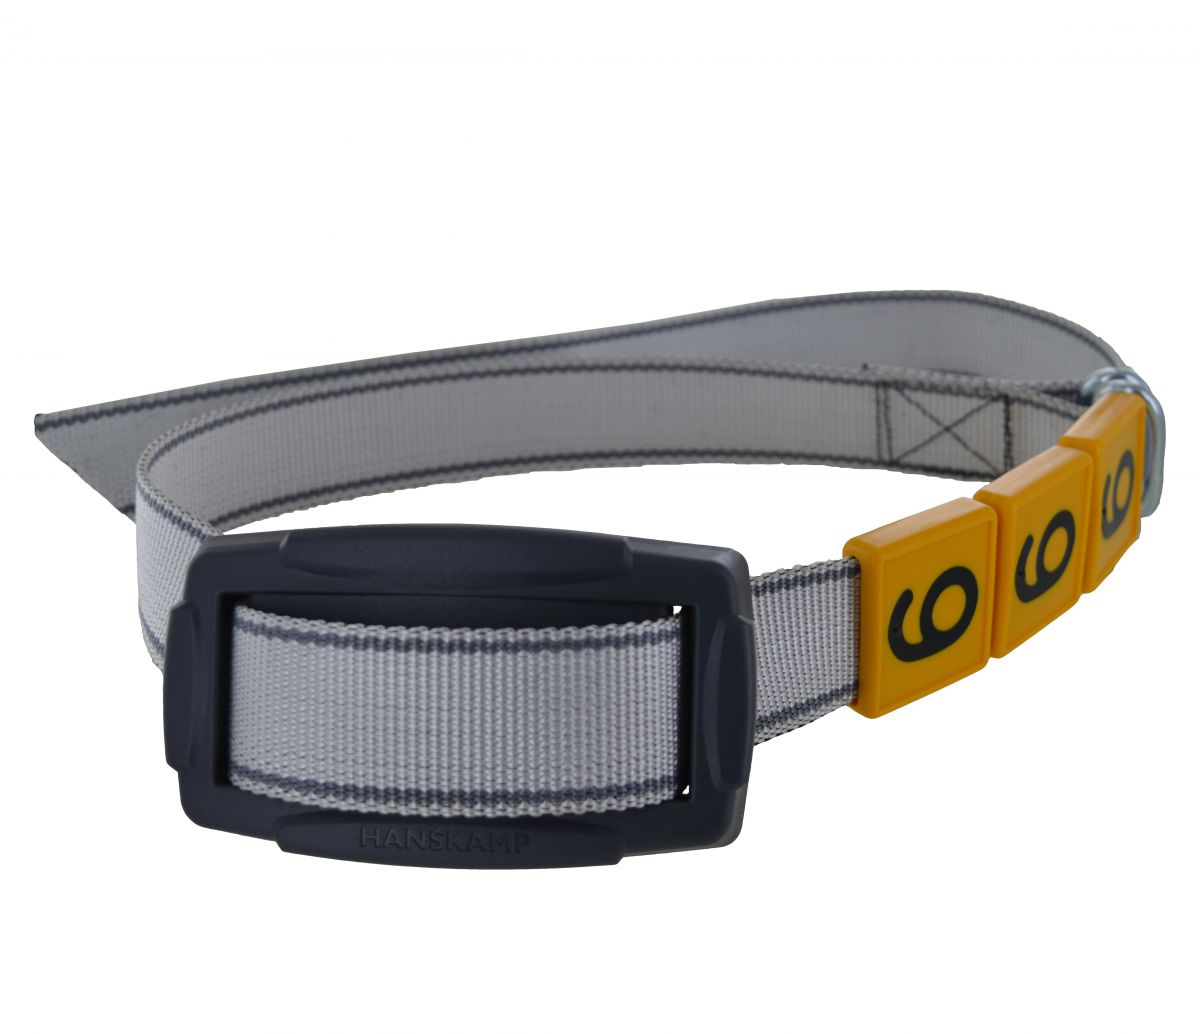 set with spidertag neck strap and id numbers for 70 animals no 1 70